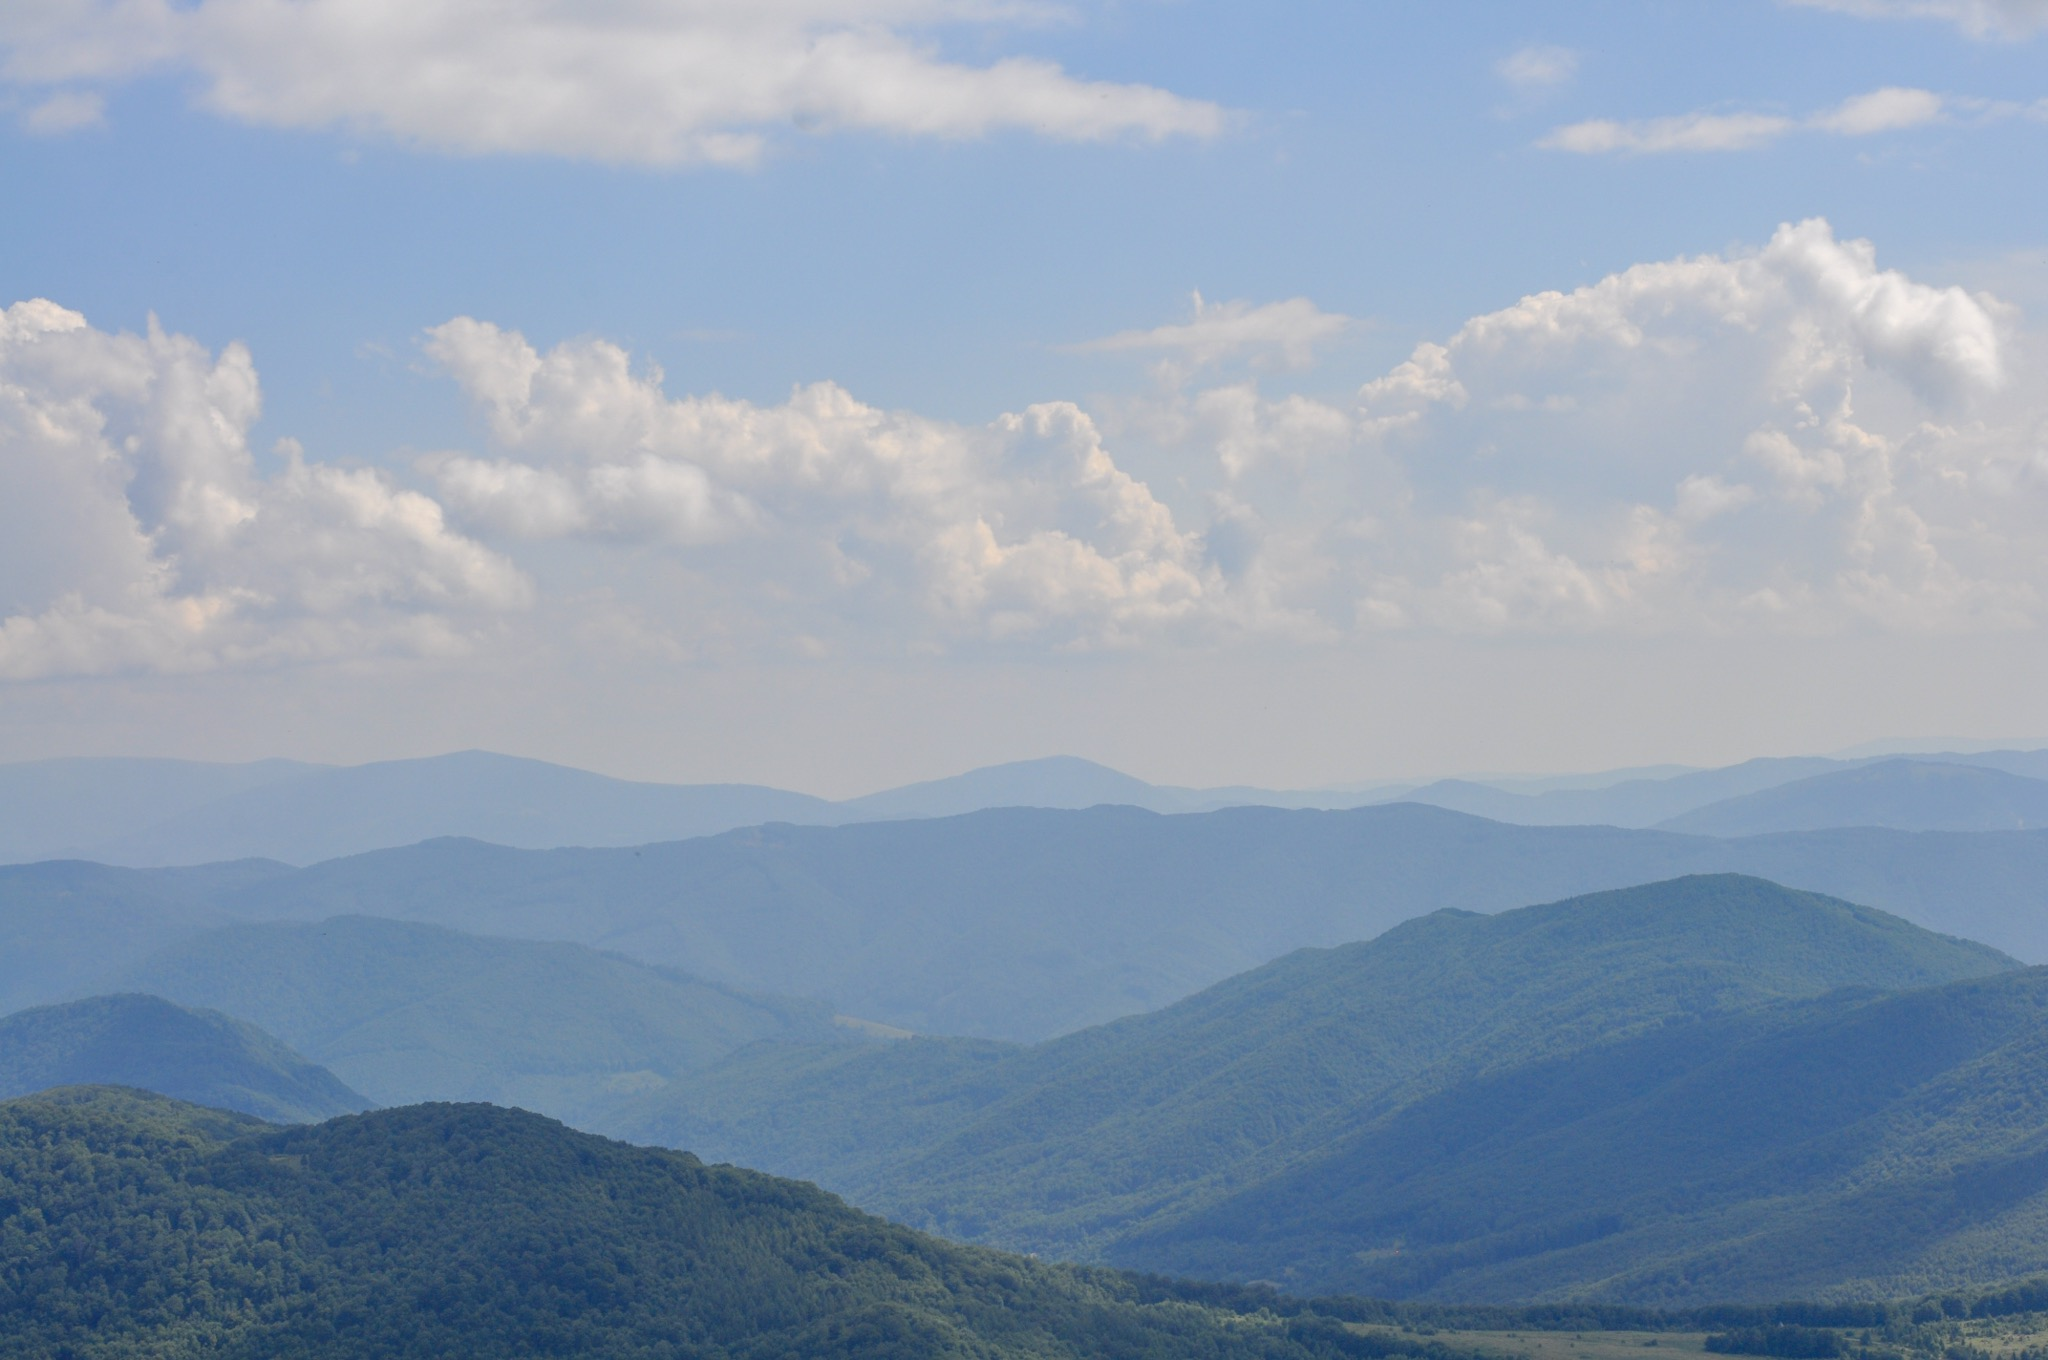 Bieszczady mountains viewed from the red trail to Tarnica